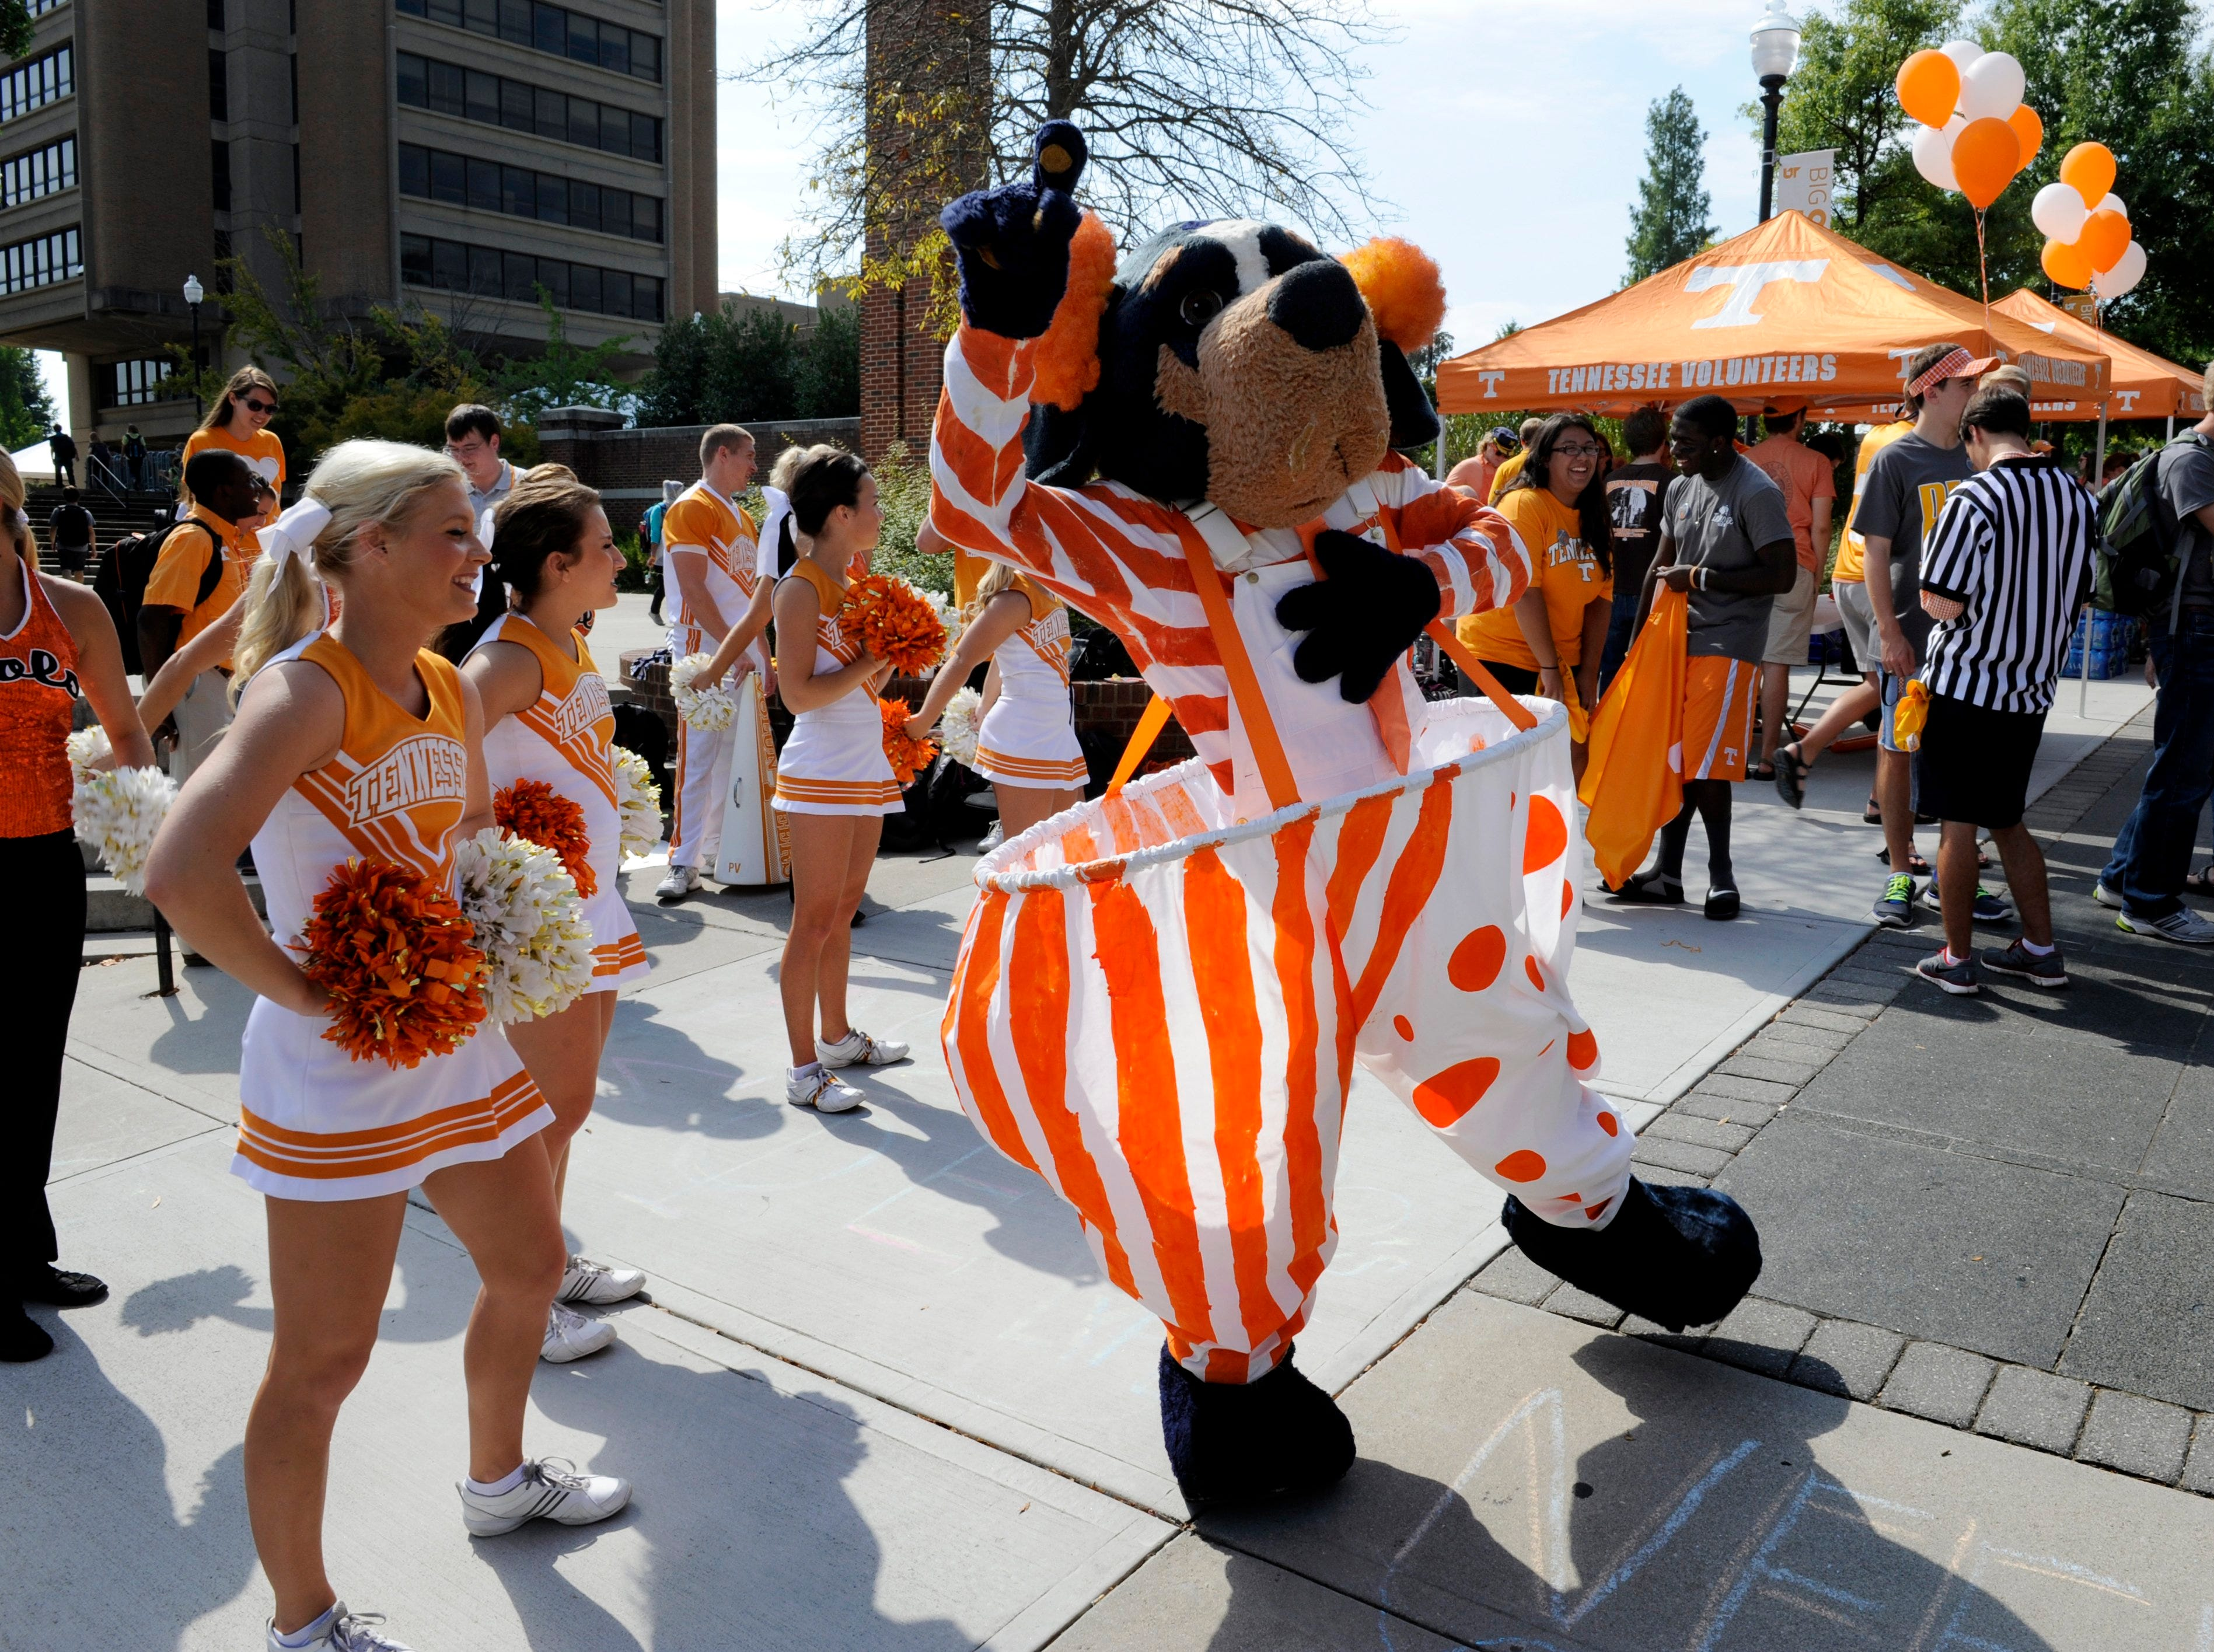 University of Tennessee mascot Smokey dances with the UT Cheerleaders at a 60th birthday party Friday, Oct. 4, 2013 hosted by UT Student Services and the Student Alumni Association on campus.